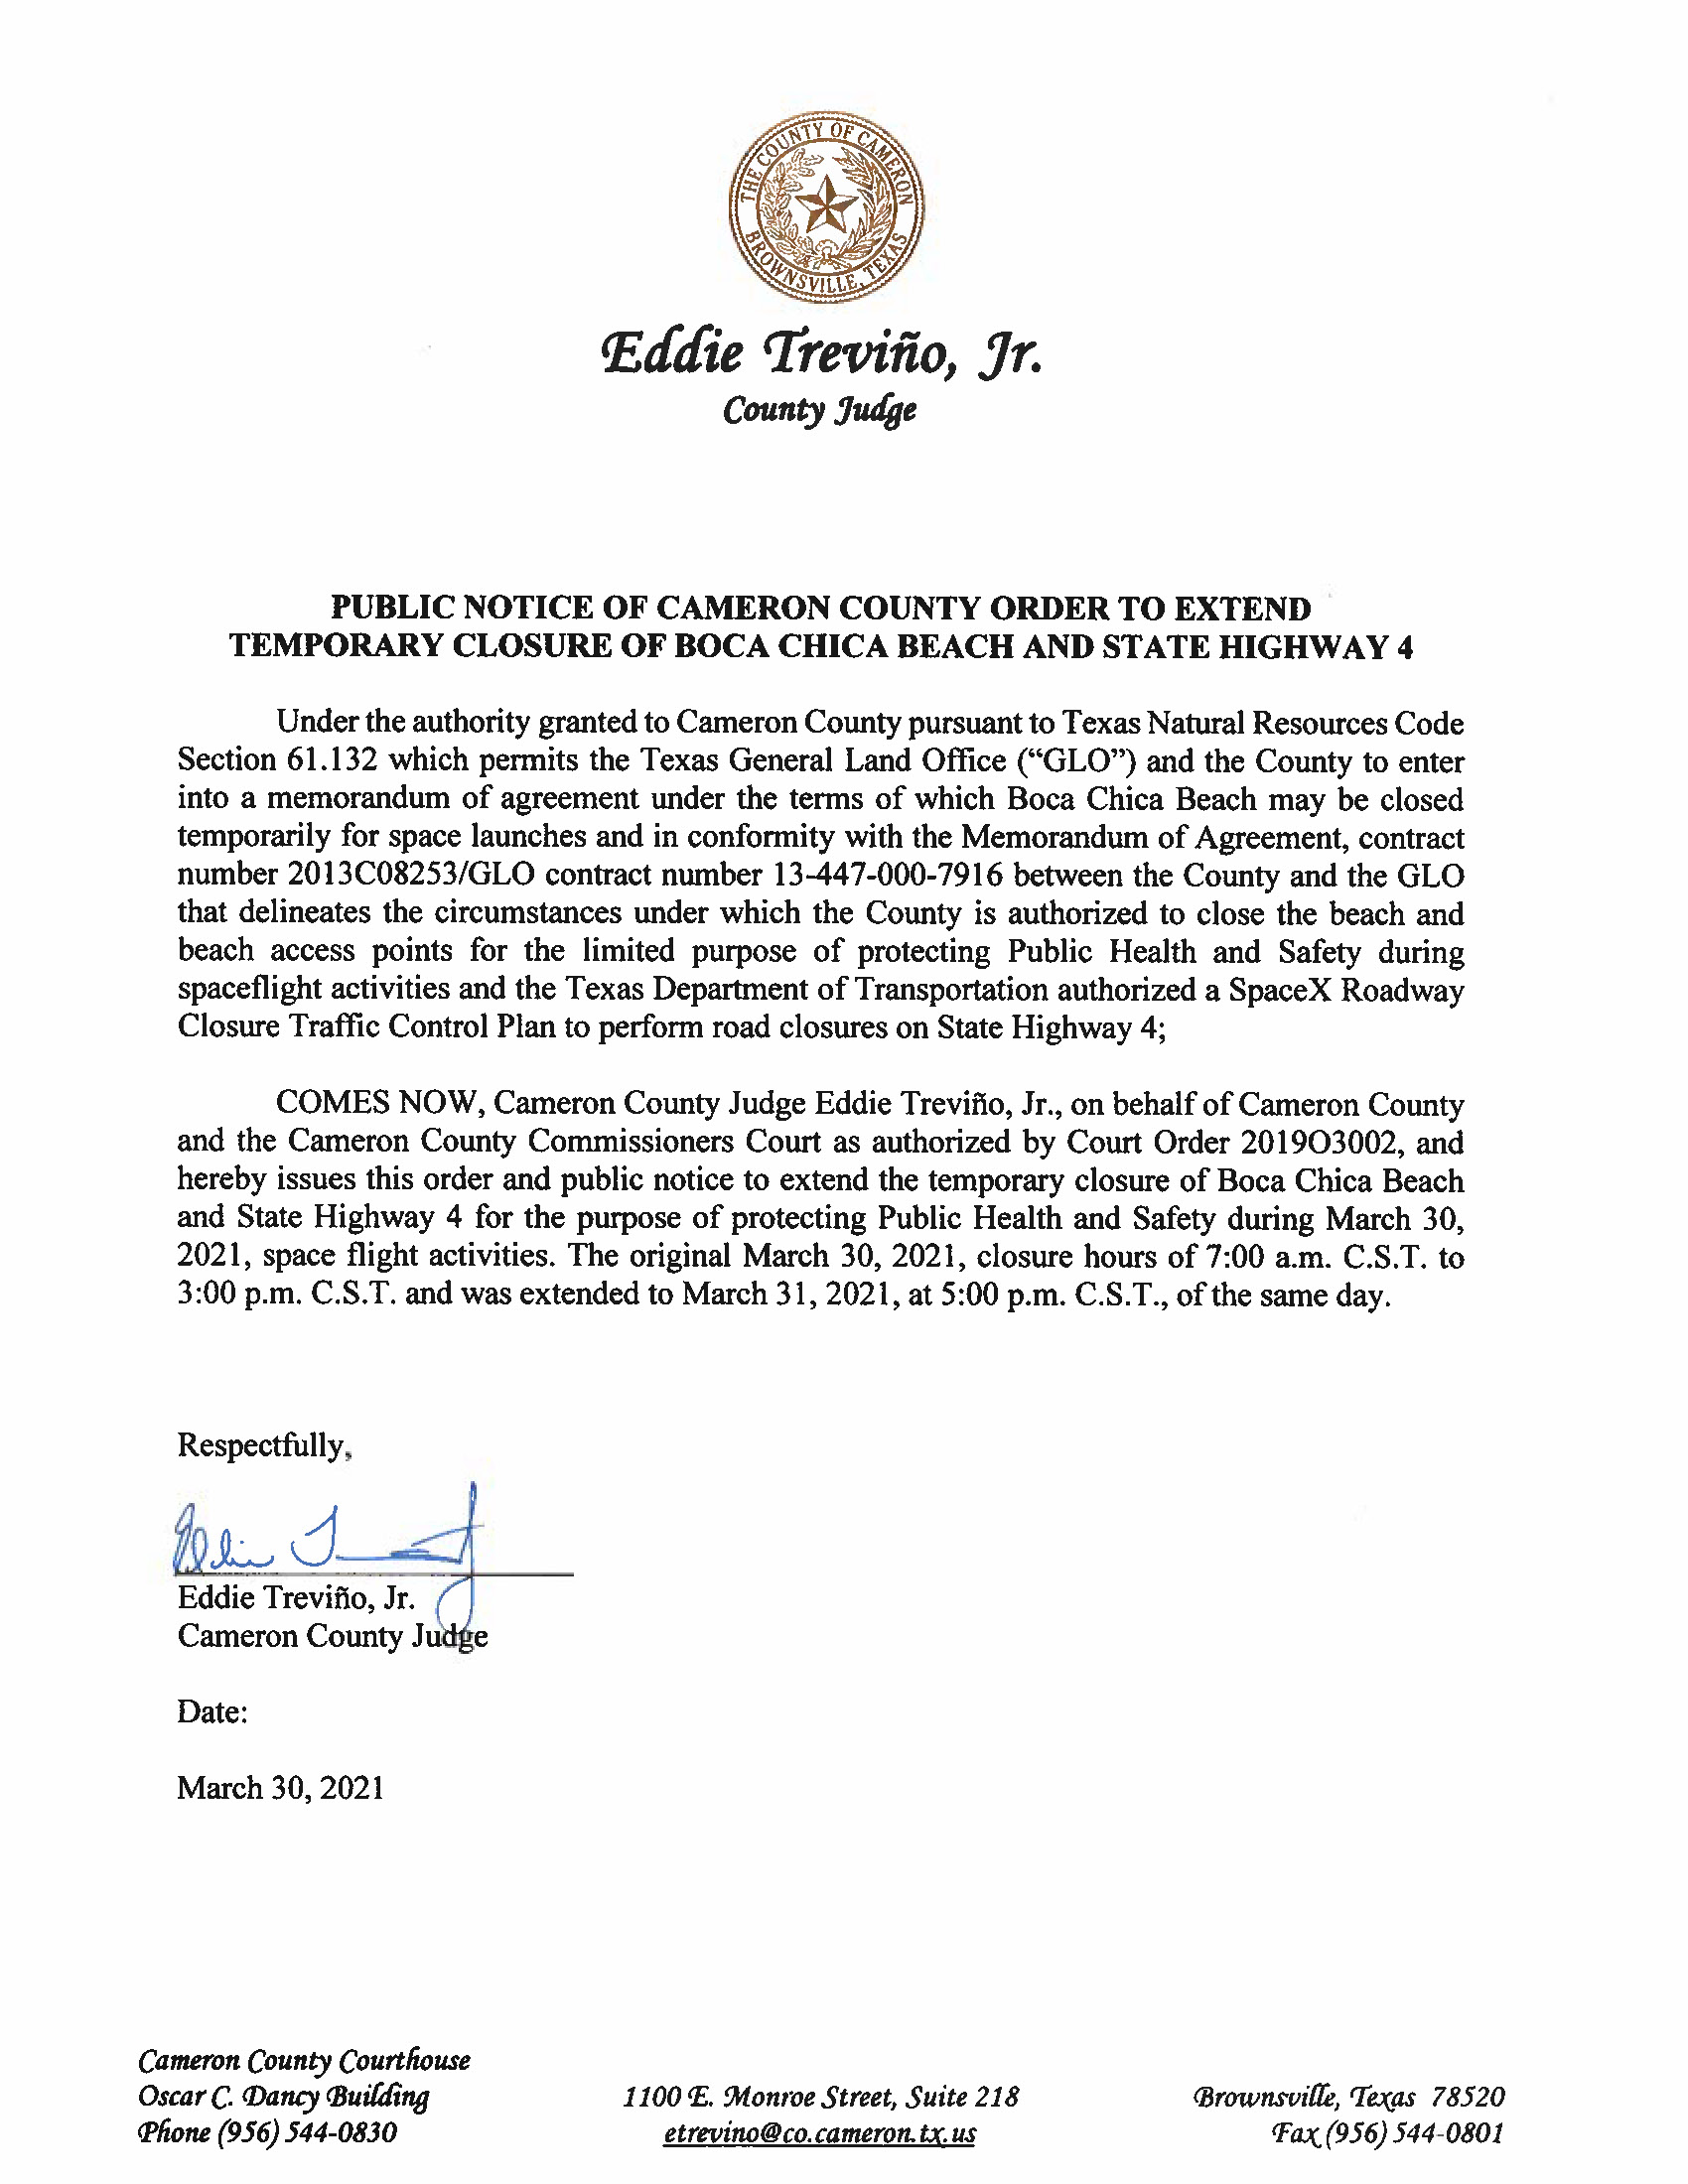 PUBLIC NOTICE OF CAMERON COUNTY ORDER TO EXTEND TEMP. BEACH CLOSURE AND HWY. 03.30 31.21.EXTENSION